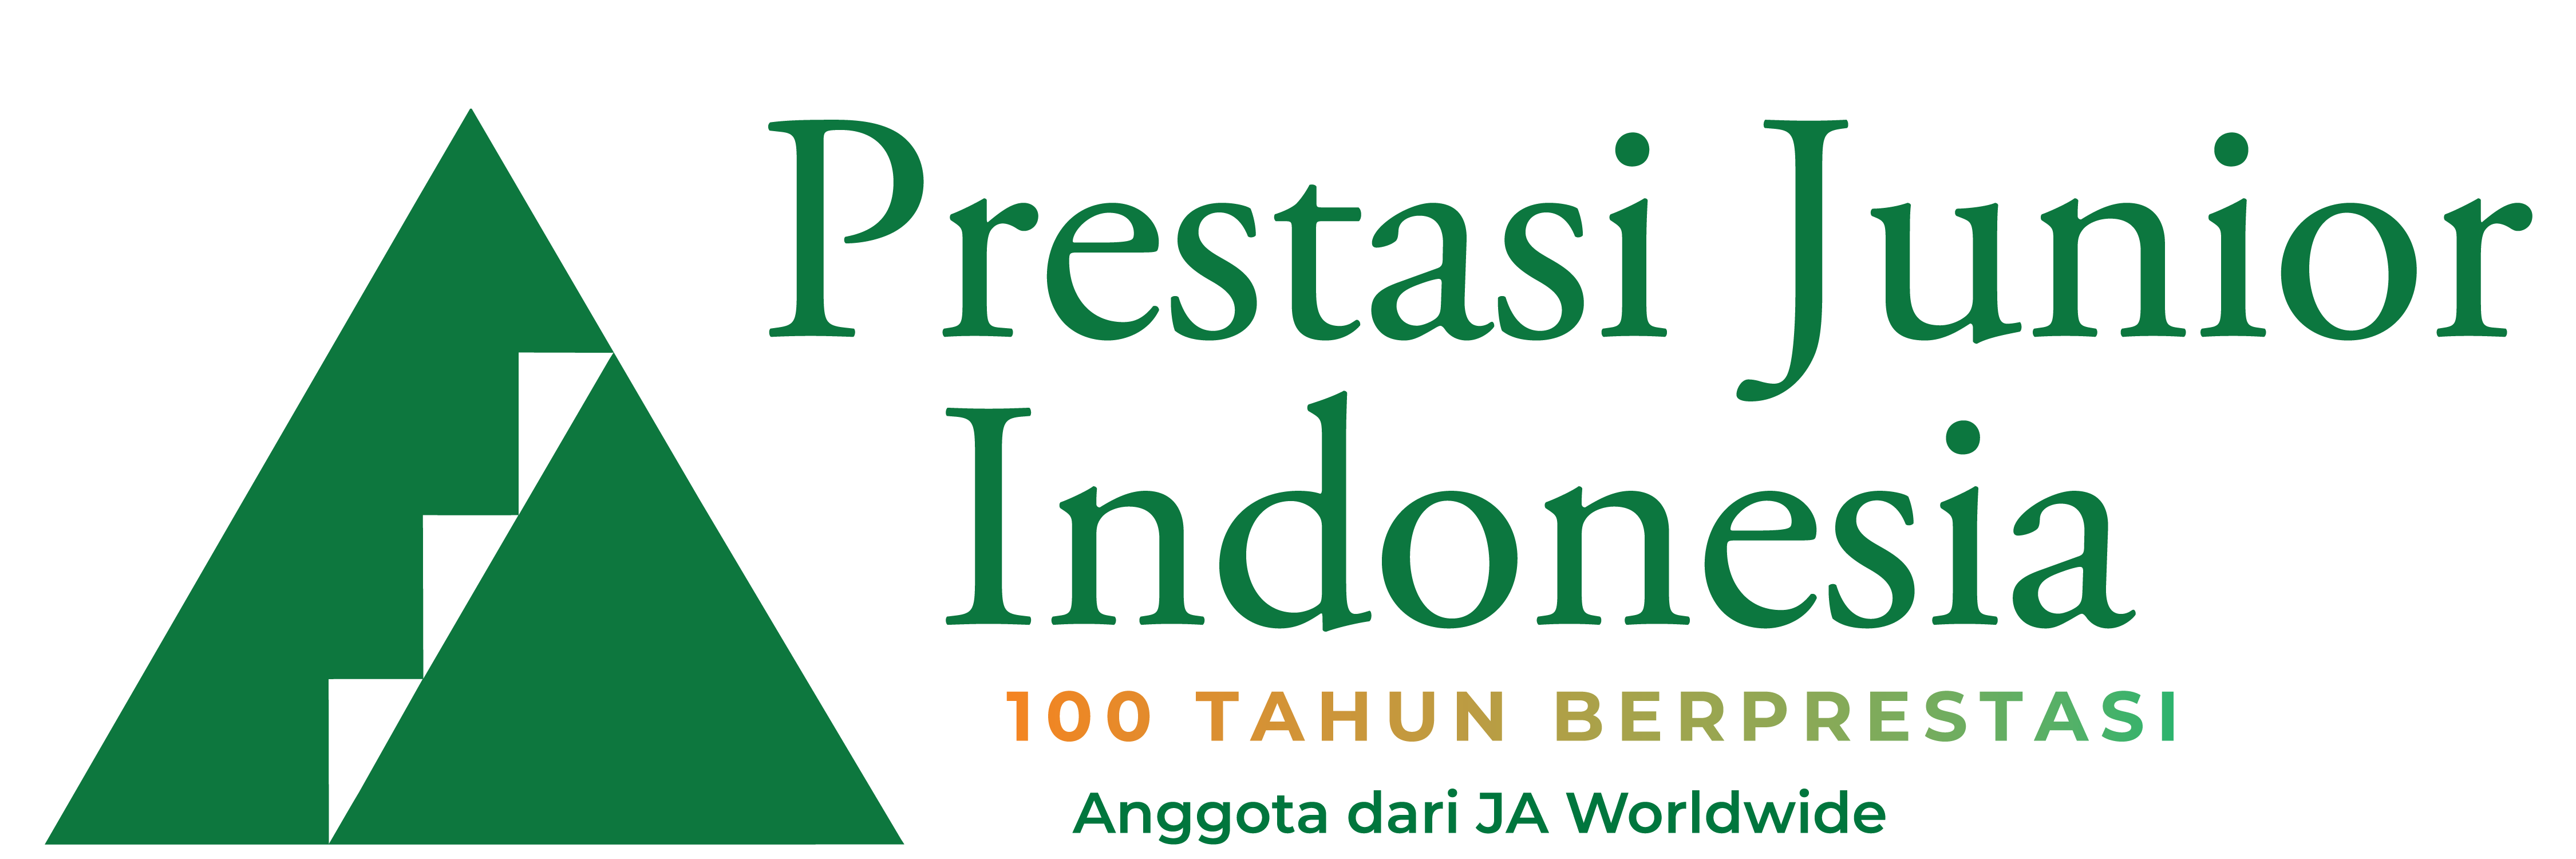 Prestasi Junior Indonesia